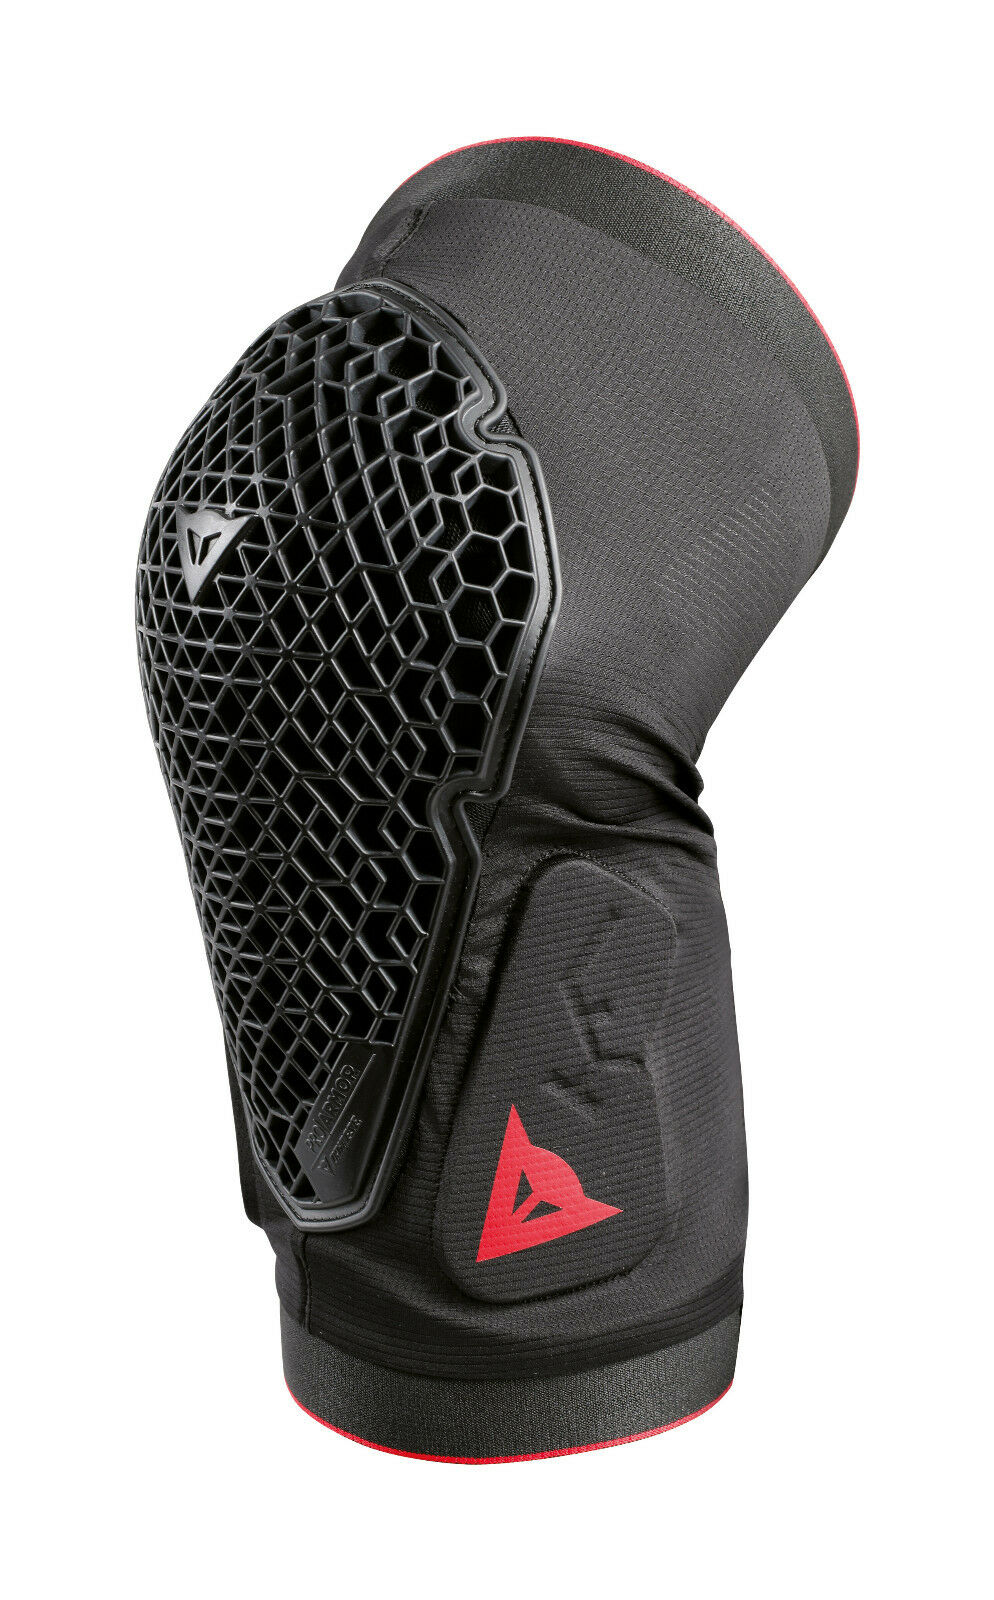 Dainese Trail Skins 2 MTB XC Mountain Bike Enduro Knee Guards Pads - Clearance